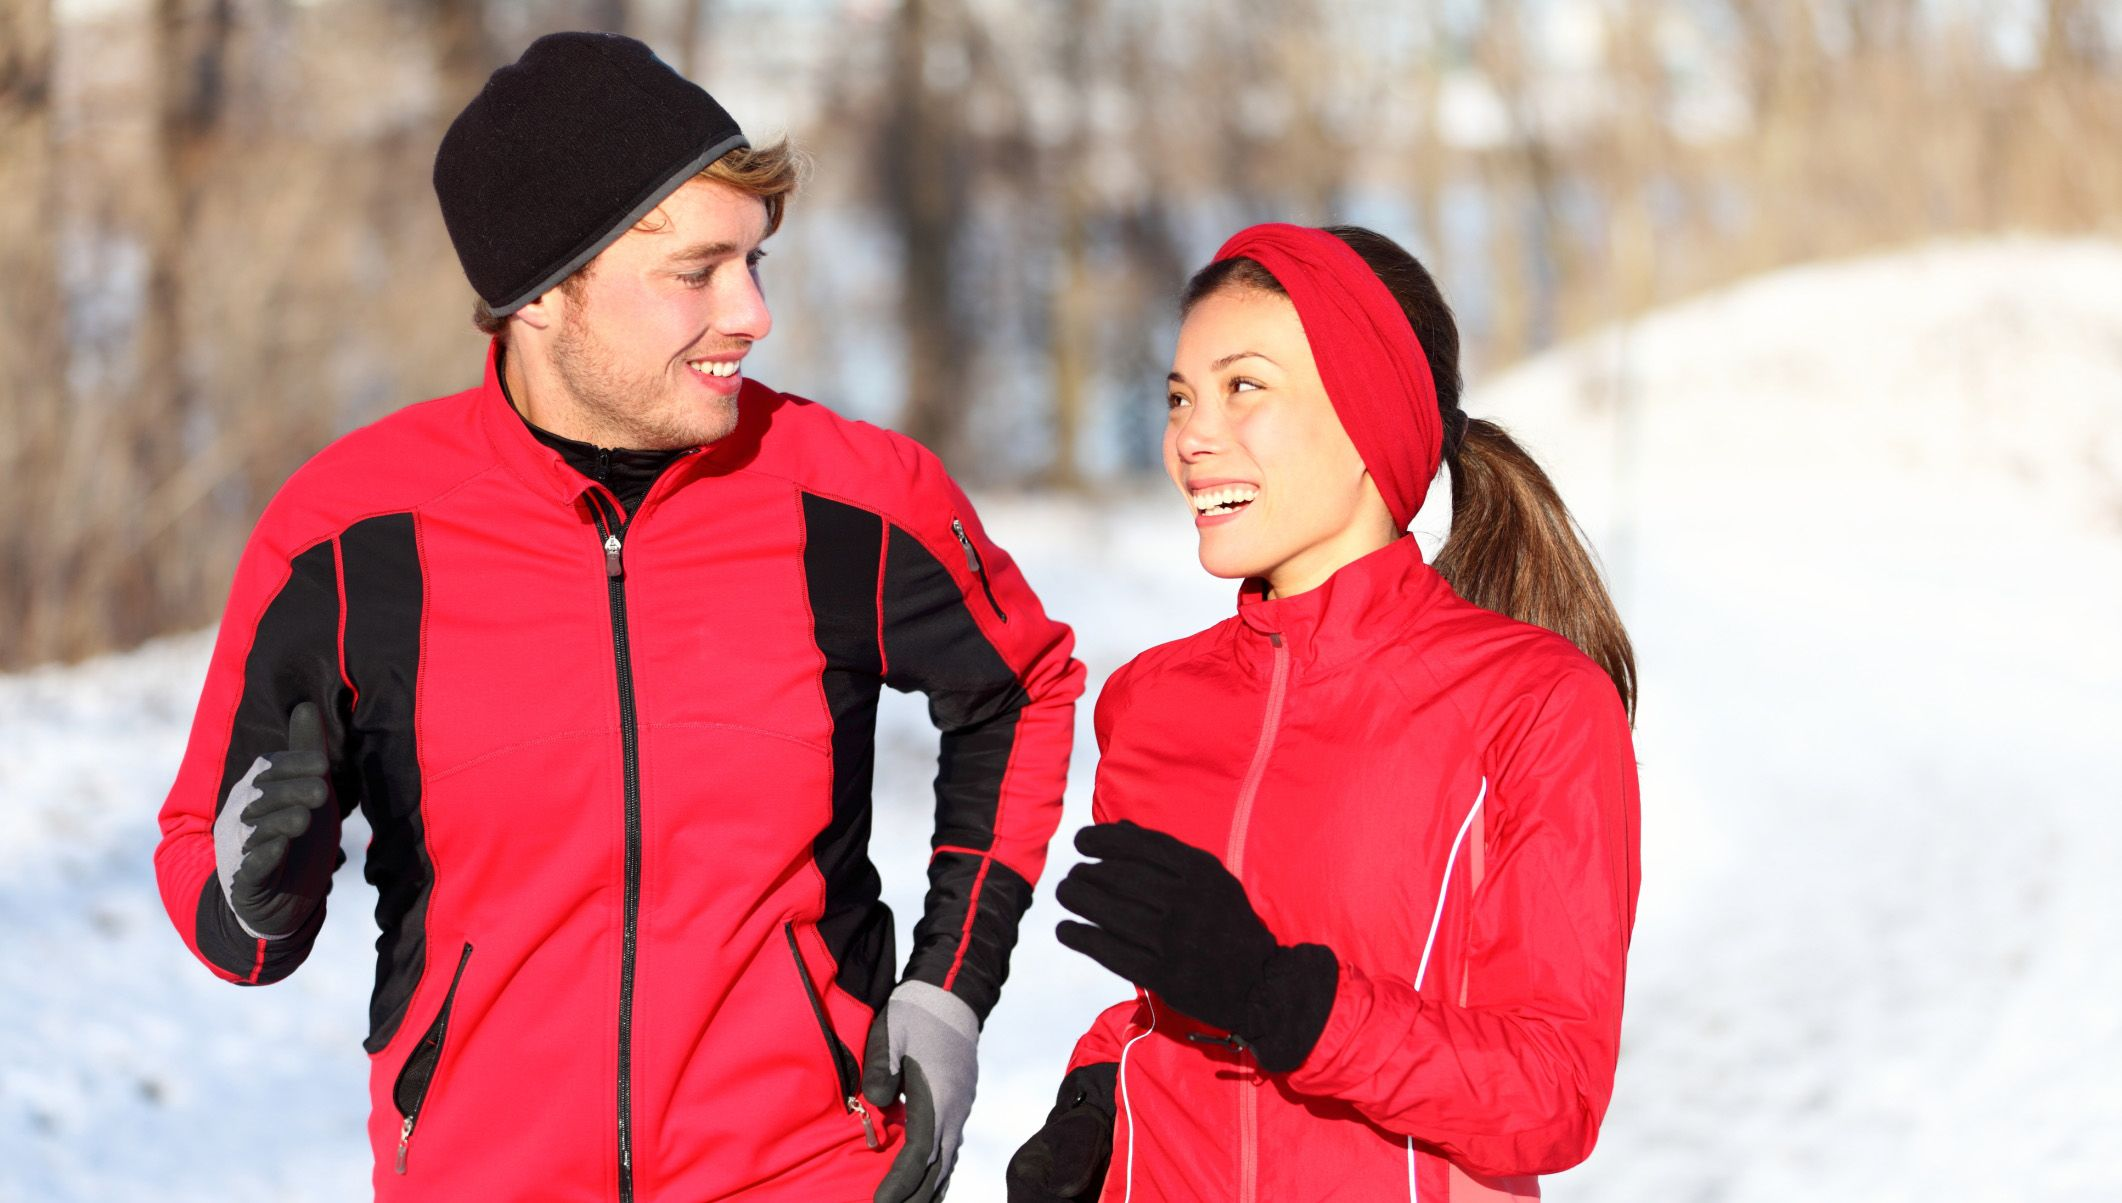 5 Tips for Winter Walking